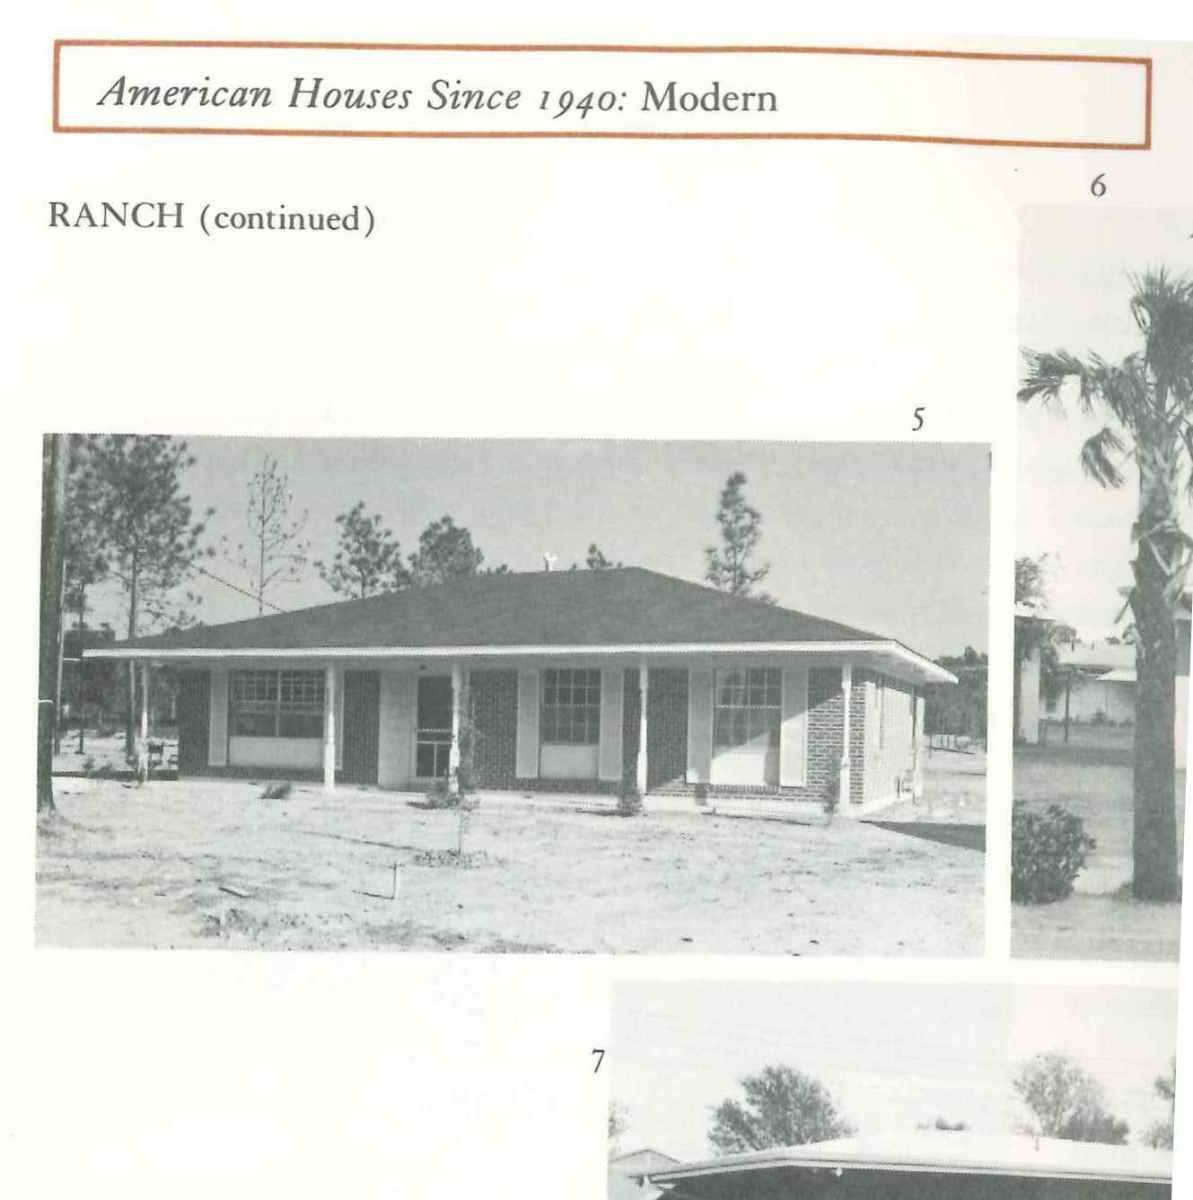 Uncredited Mississippi: Forest Heights, Gulfport